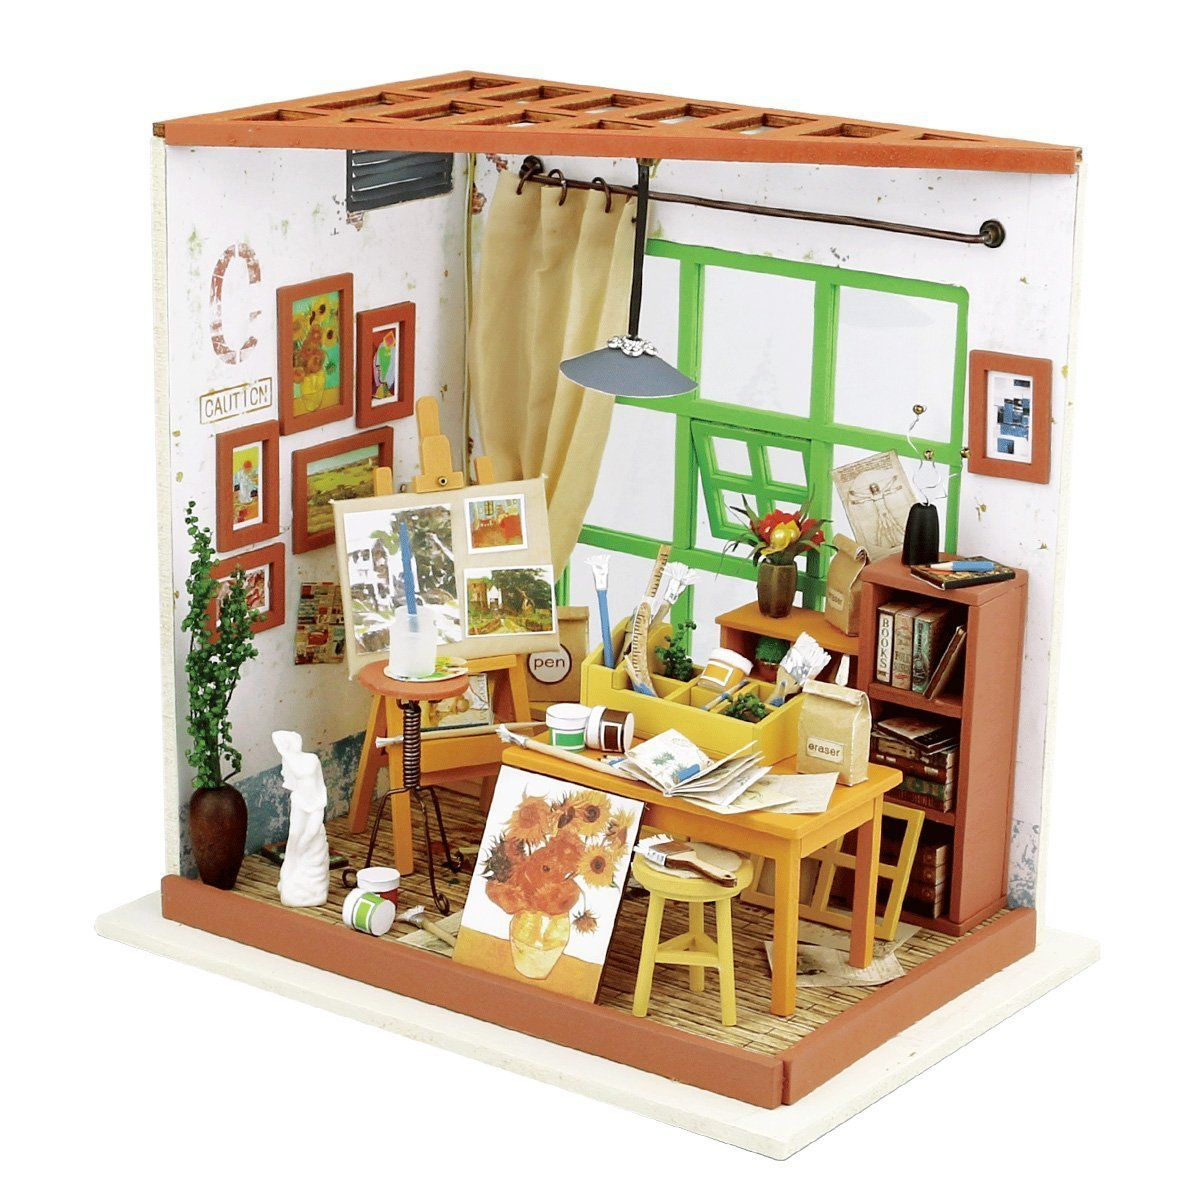 how to build miniature furniture. AmazonSmile: Robotime 3D Dreamy Dollhouse Puzzle DIY Miniature Furniture Kits Great Crafting Project For Boys How To Build